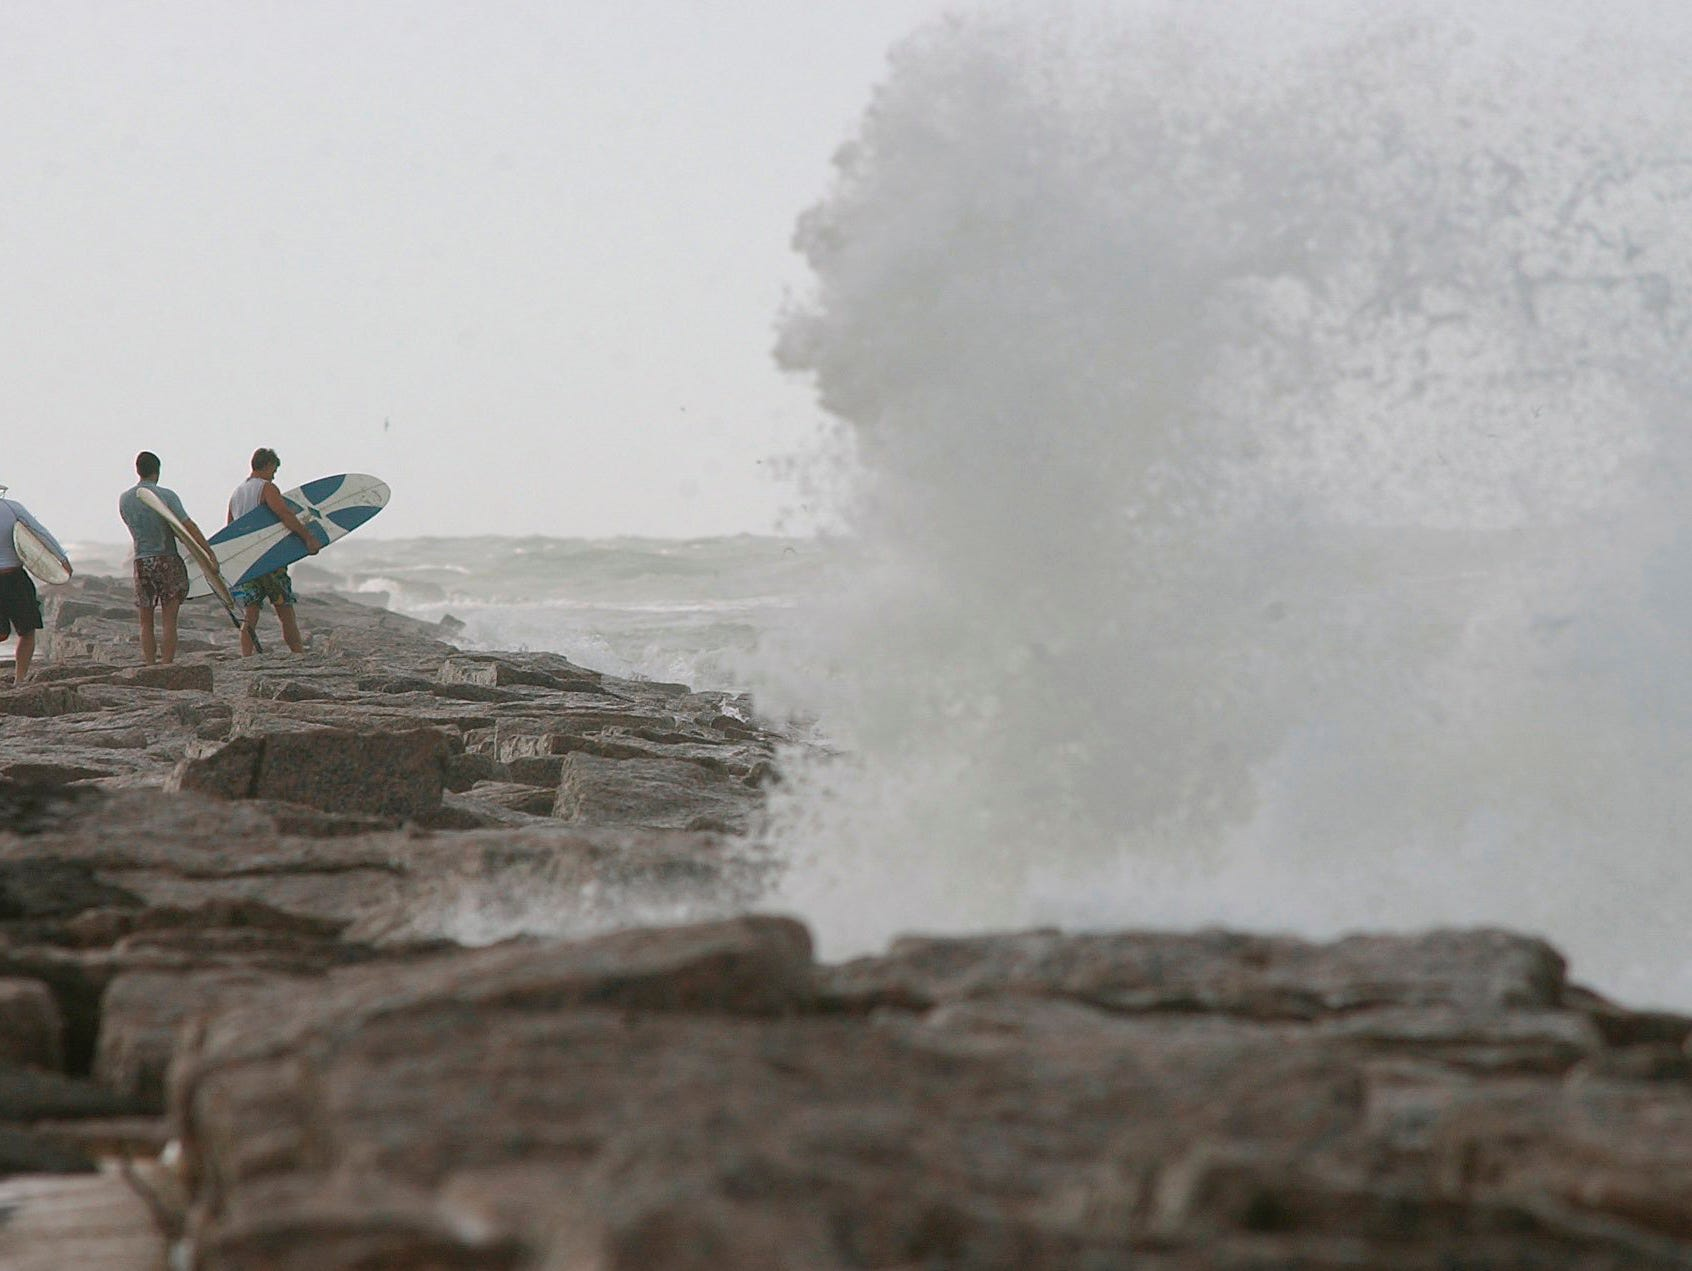 A wave crashes on the rocks at the south jetty in Port Aransas as three surfers look for a spot to jump into the surf brought in by Hurricane Erika on Aug. 16, 2003. (8-16-03 mcp)